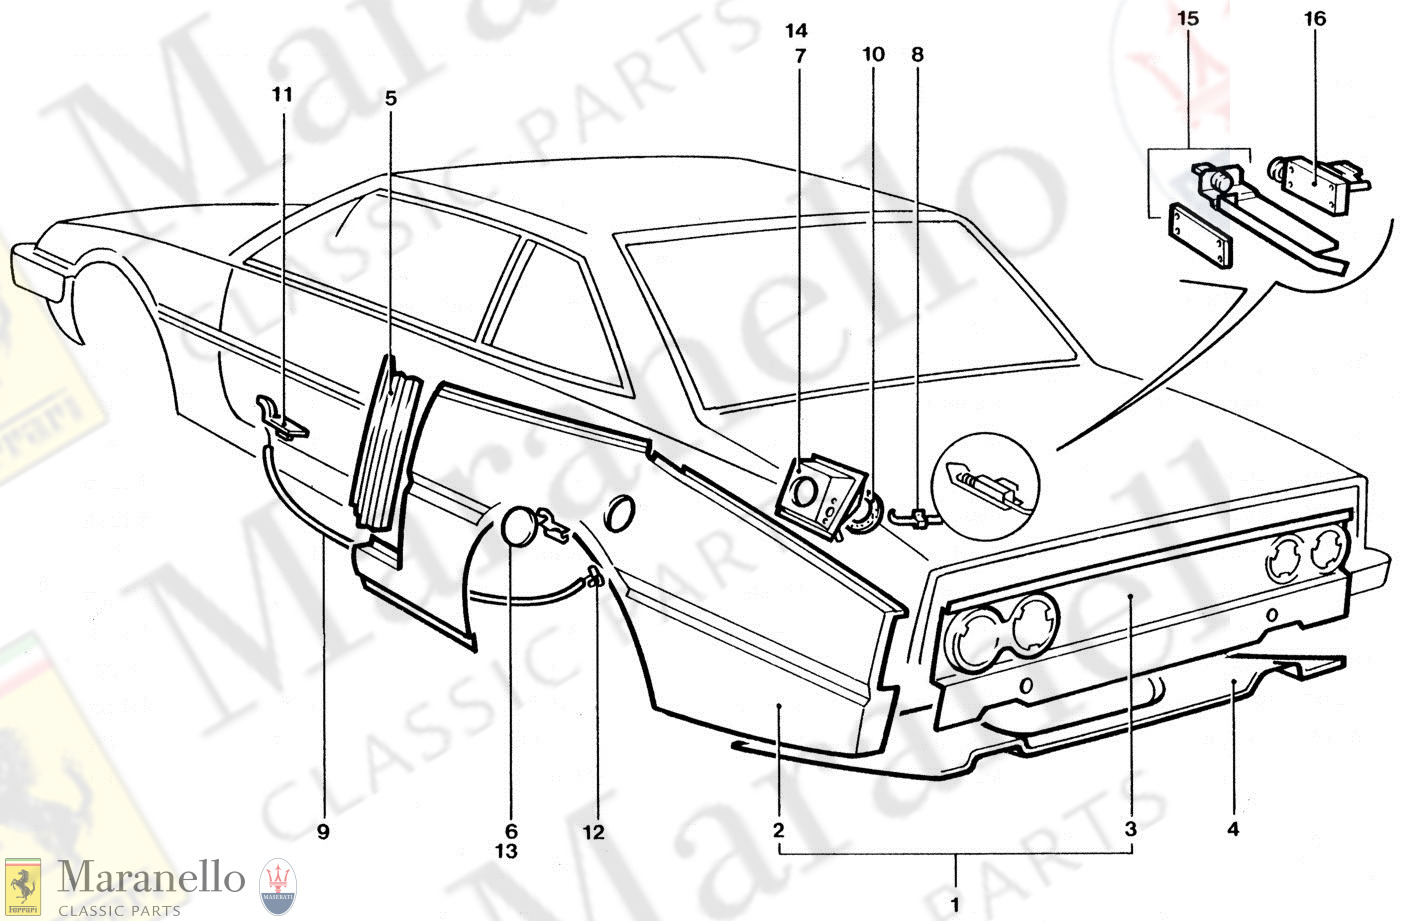 204 - Rear Body Panels